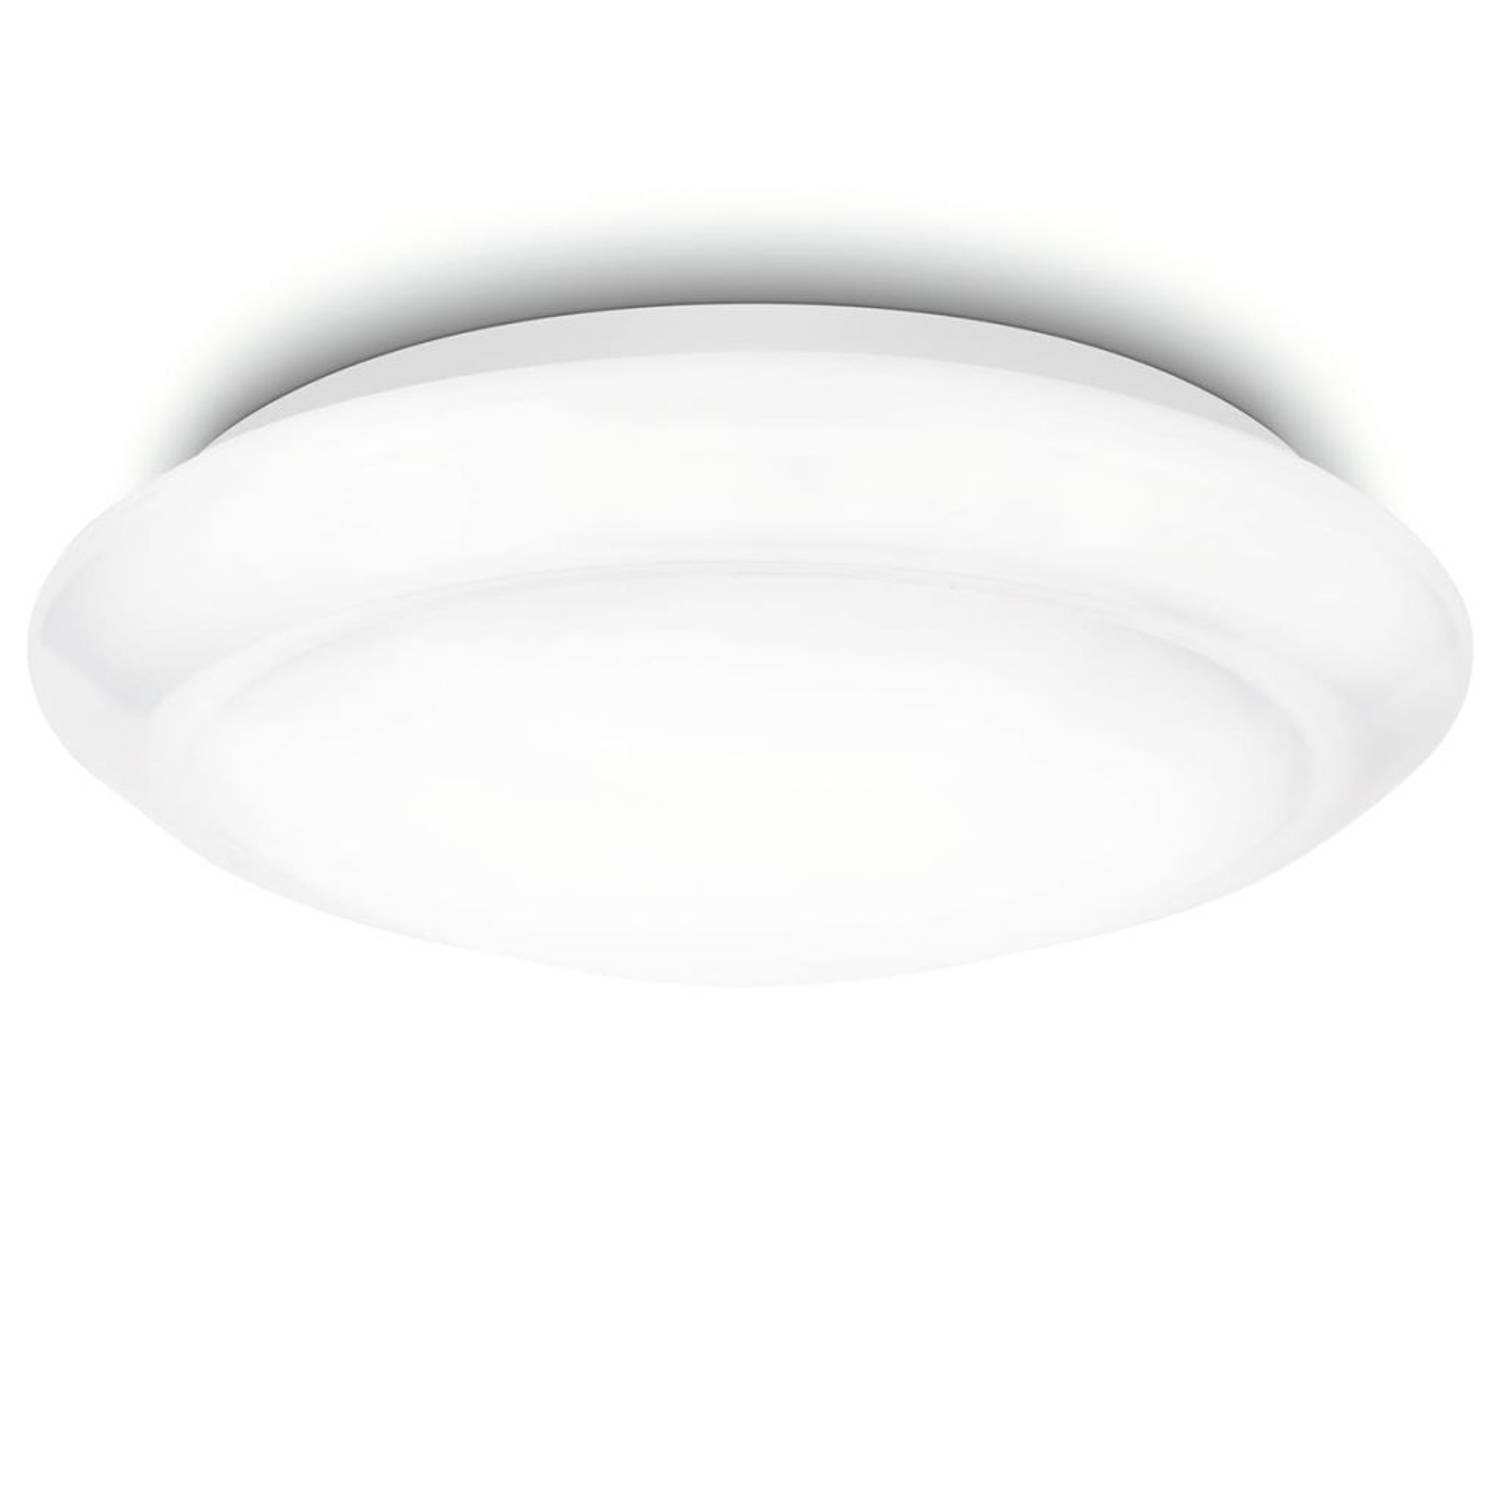 Philips Plafondlamp LED myLiving Cinnabar 4x1,5 W wit 333613117